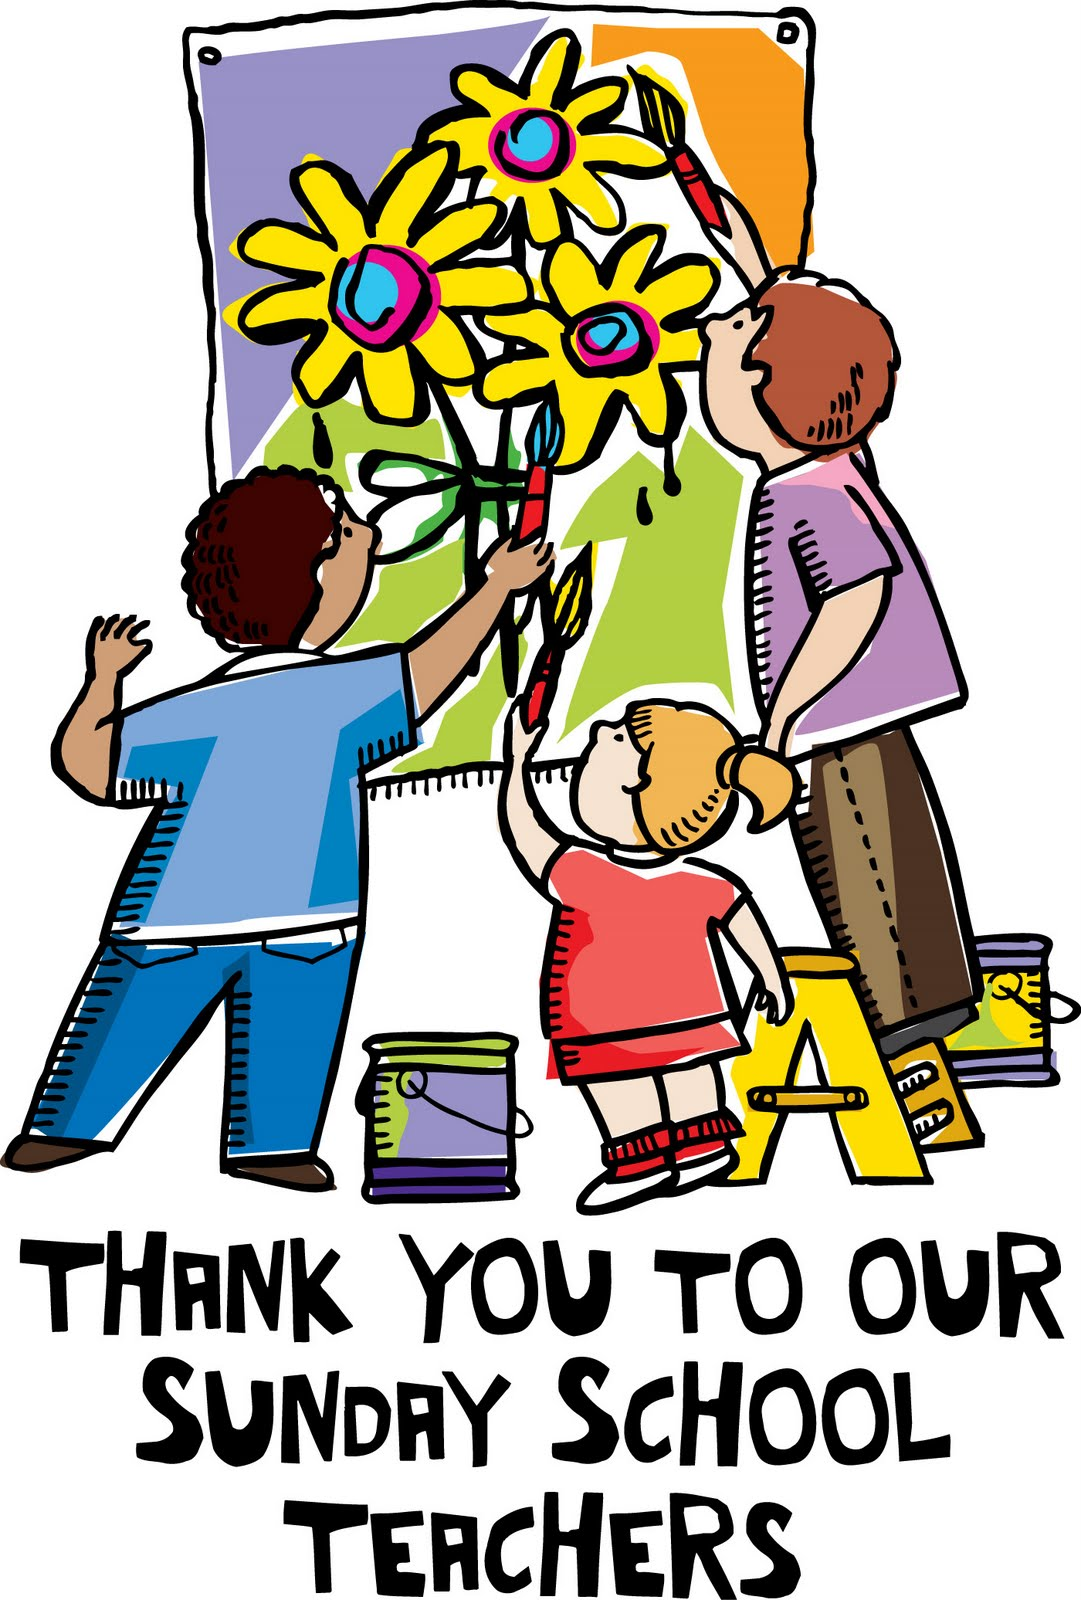 Clipart for parents and teacher for sunday school event.